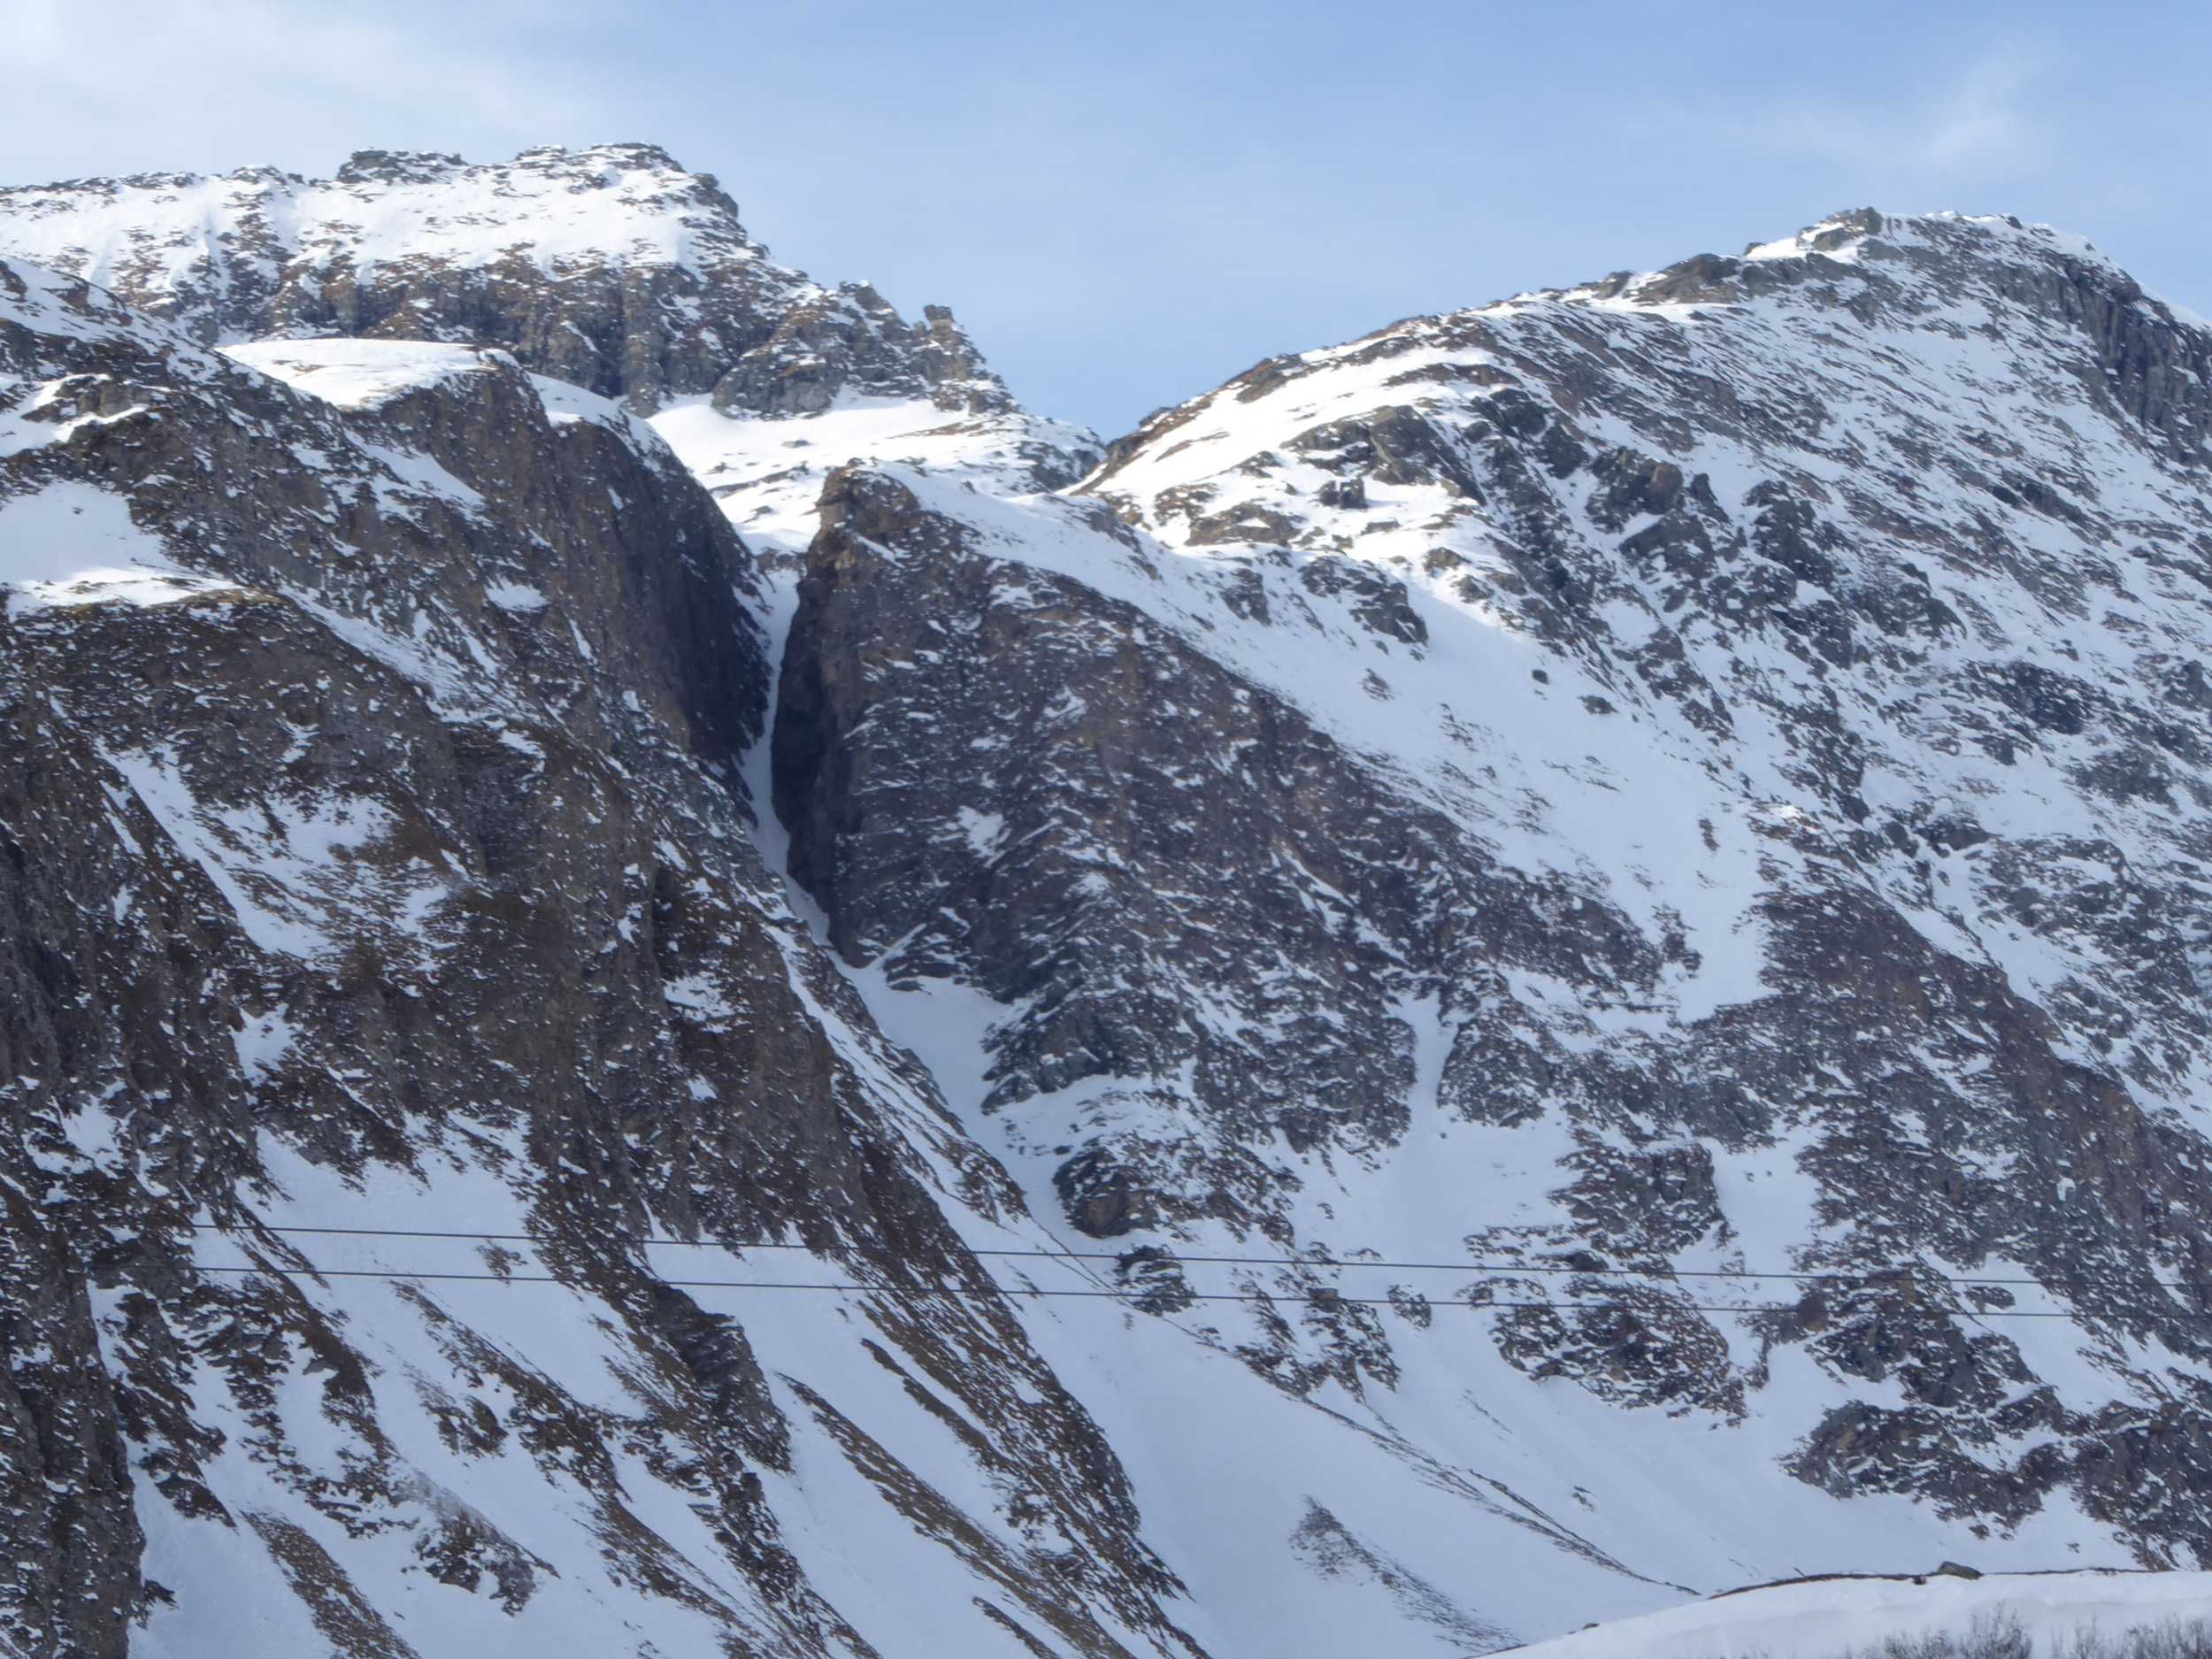 we skied the awesome tight couloir between those two hefty cliffs. it was one of the coolest lines I have ever skied!